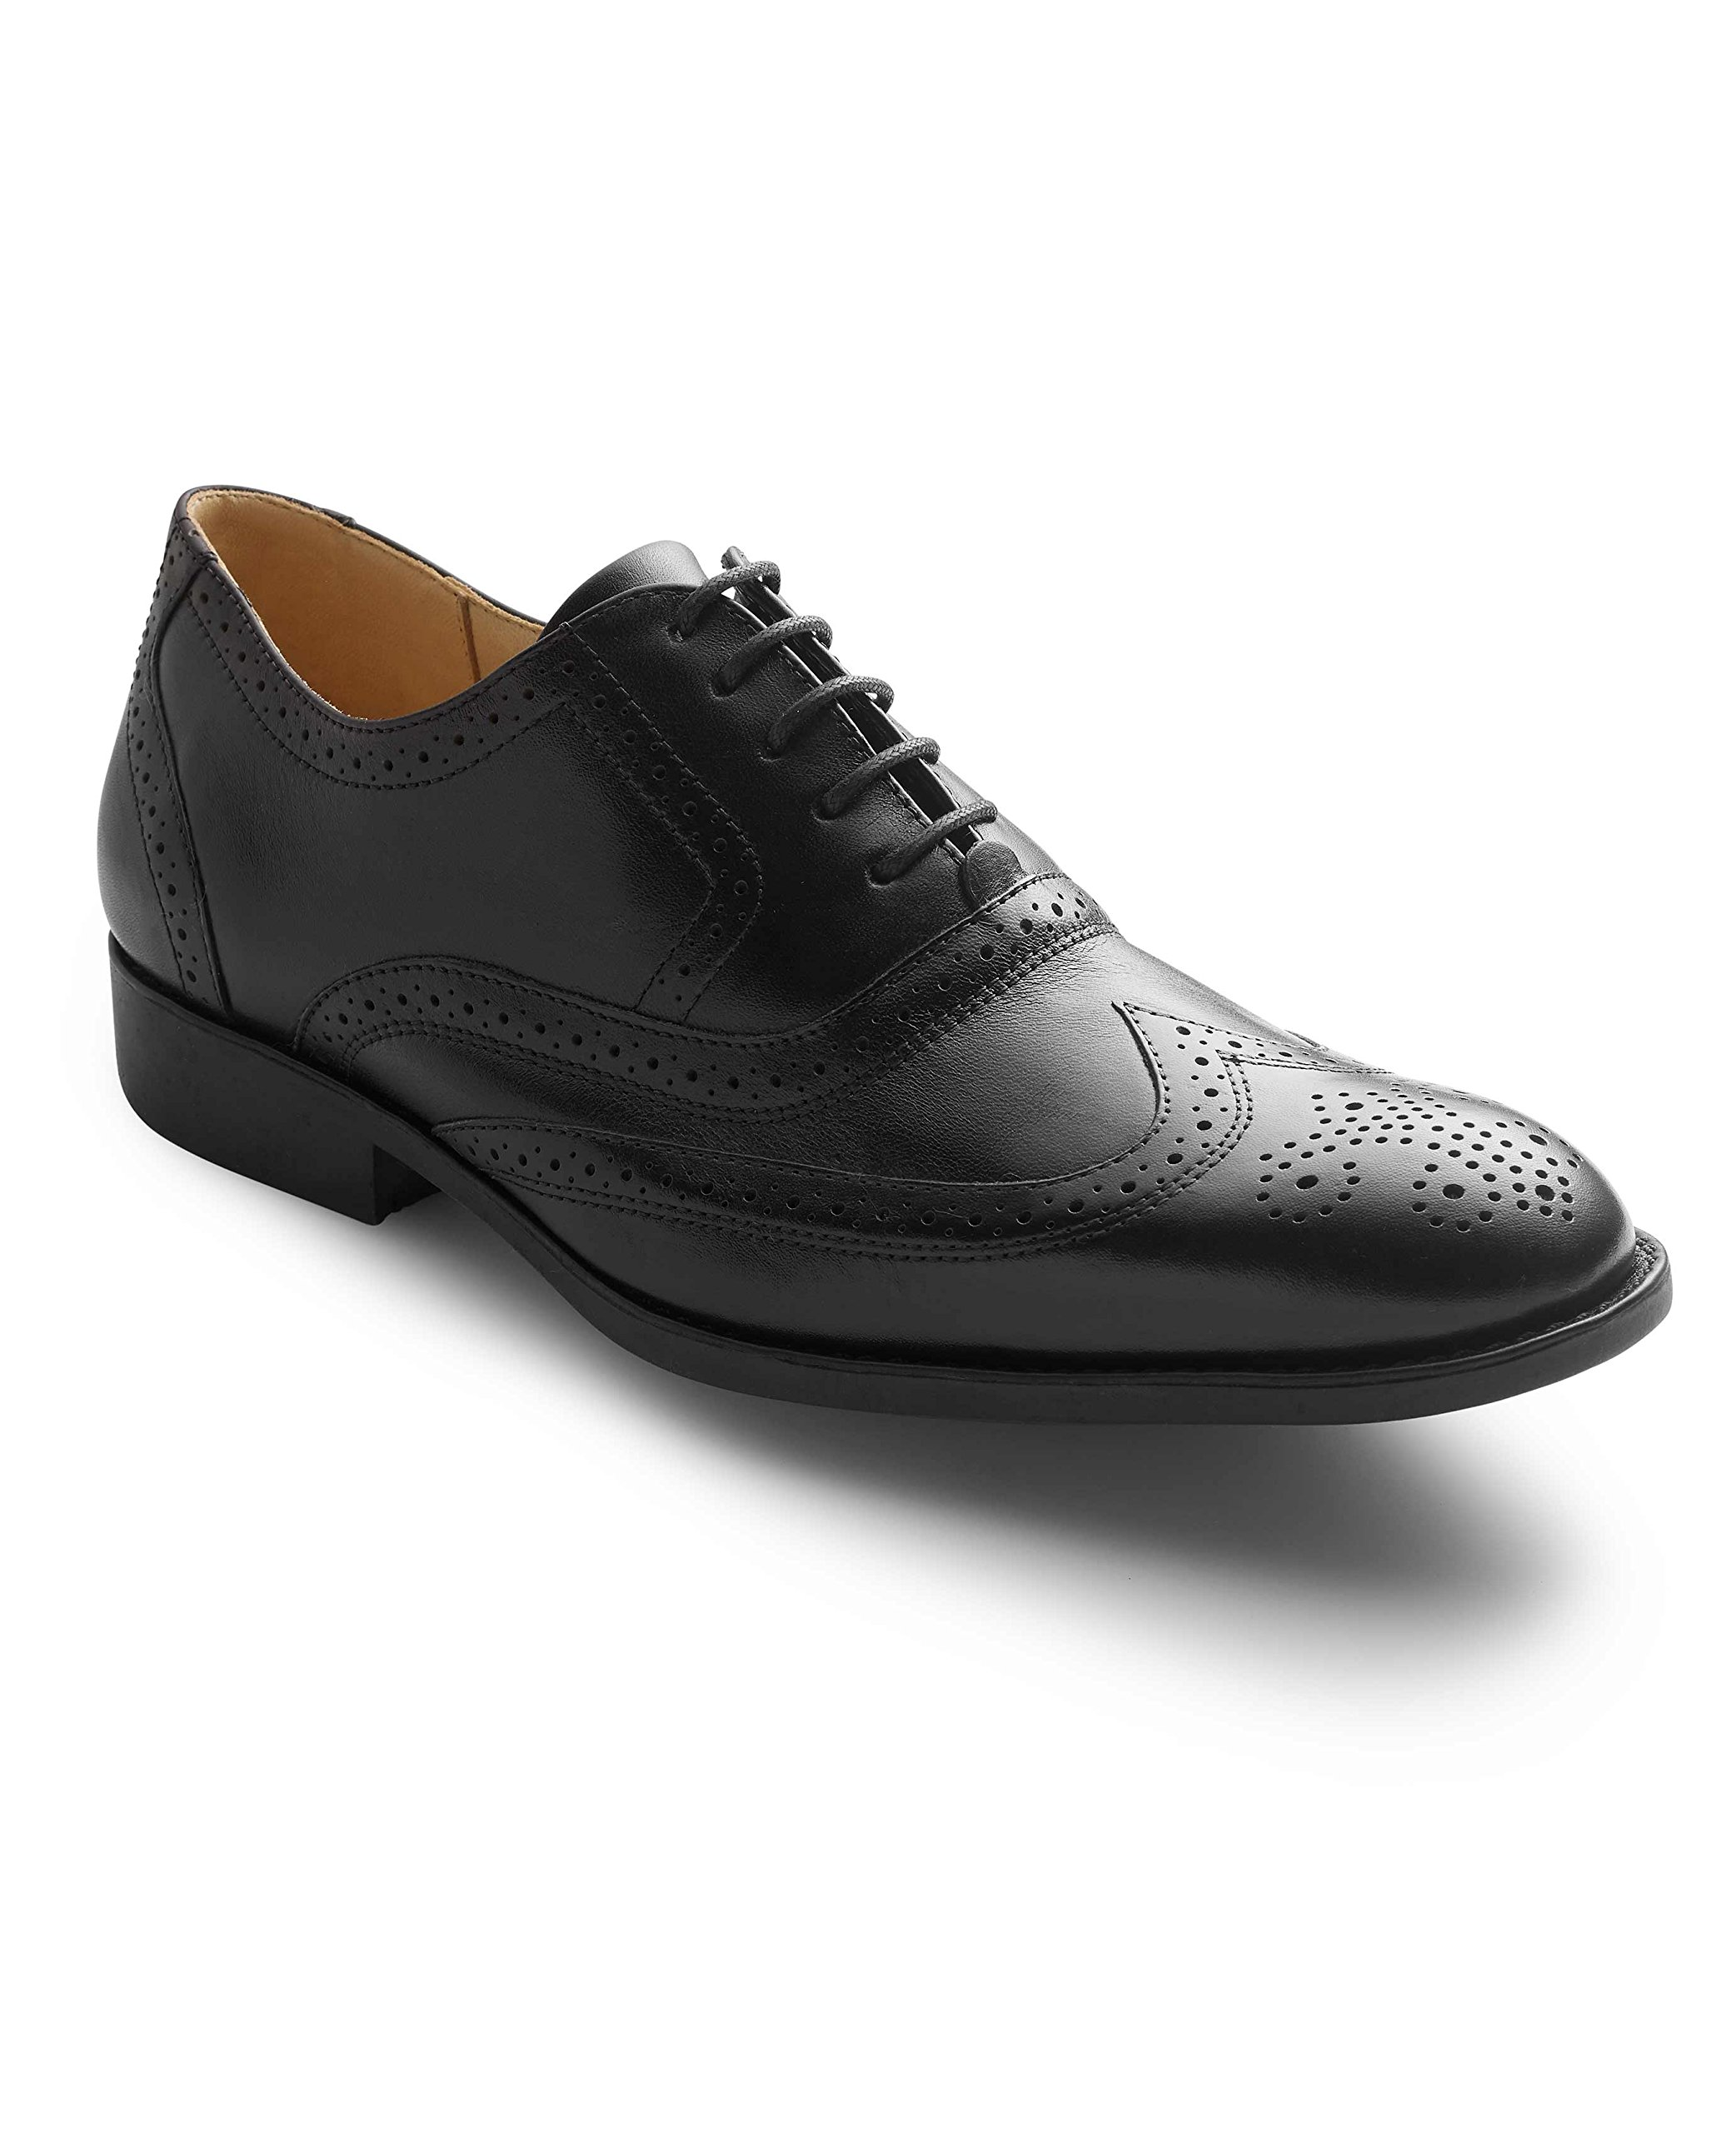 Savile Row Men's Black Leather Full Brogue Shoes 9